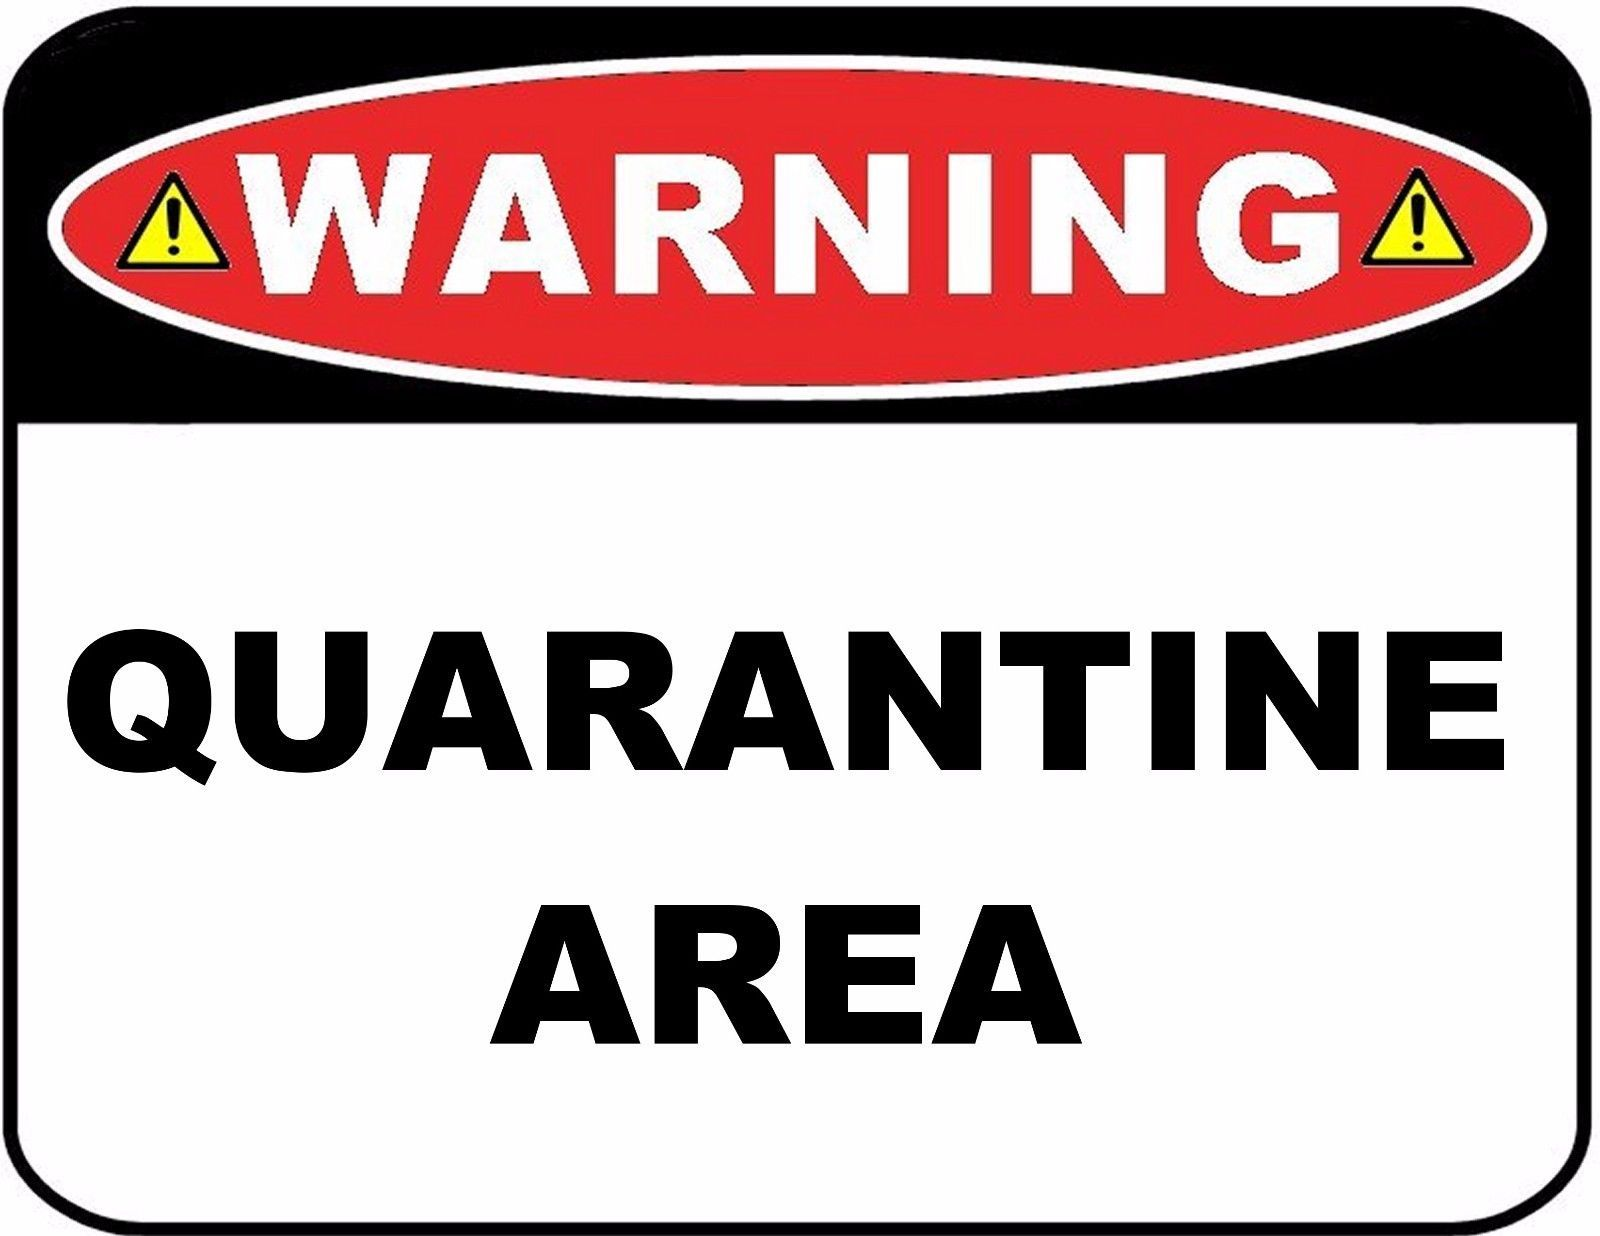 It's just a graphic of Quarantine Sign Printable for transparent